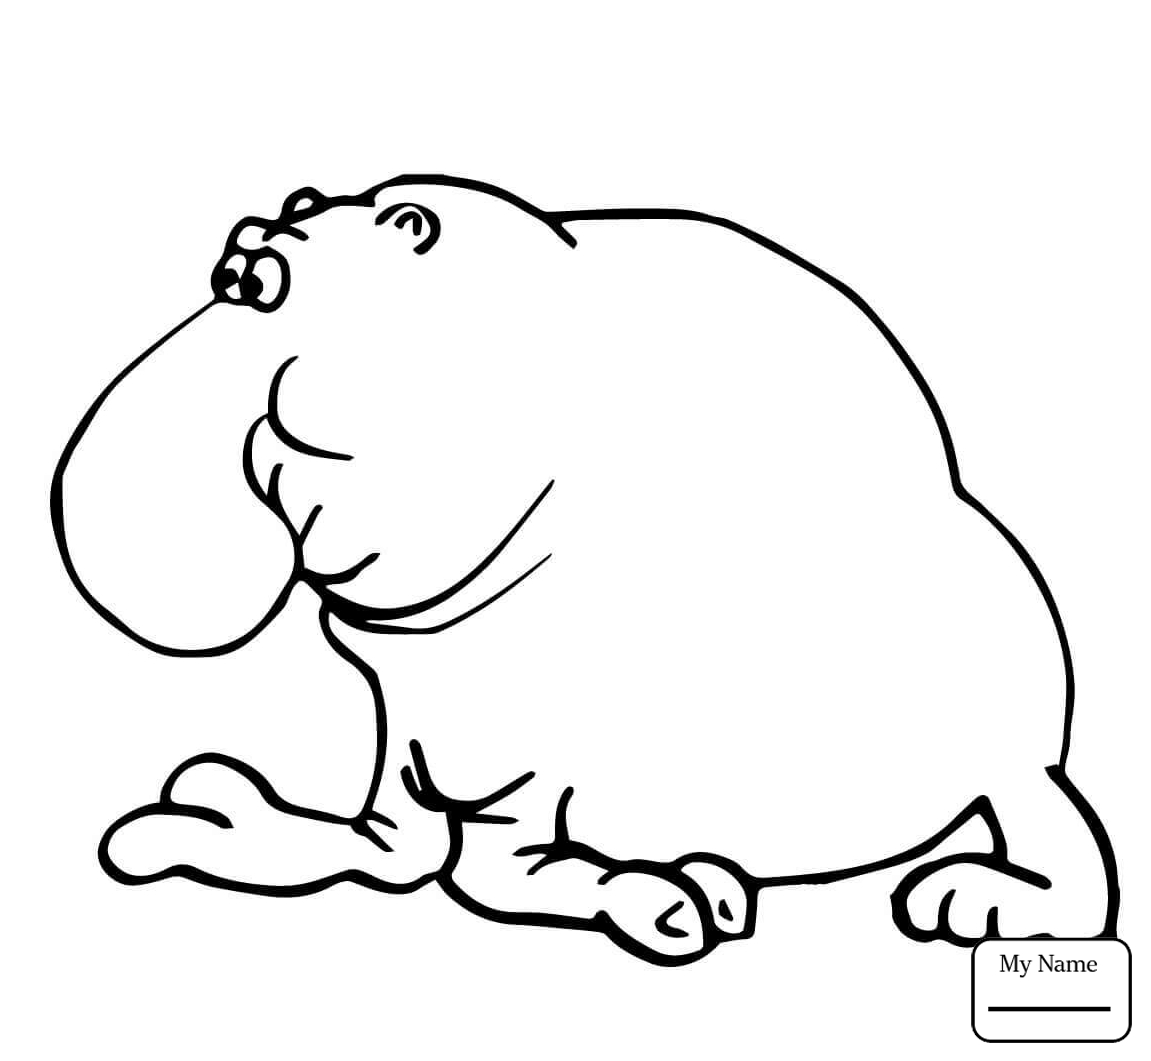 Baby Seal Drawing at GetDrawings.com | Free for personal use Baby ...